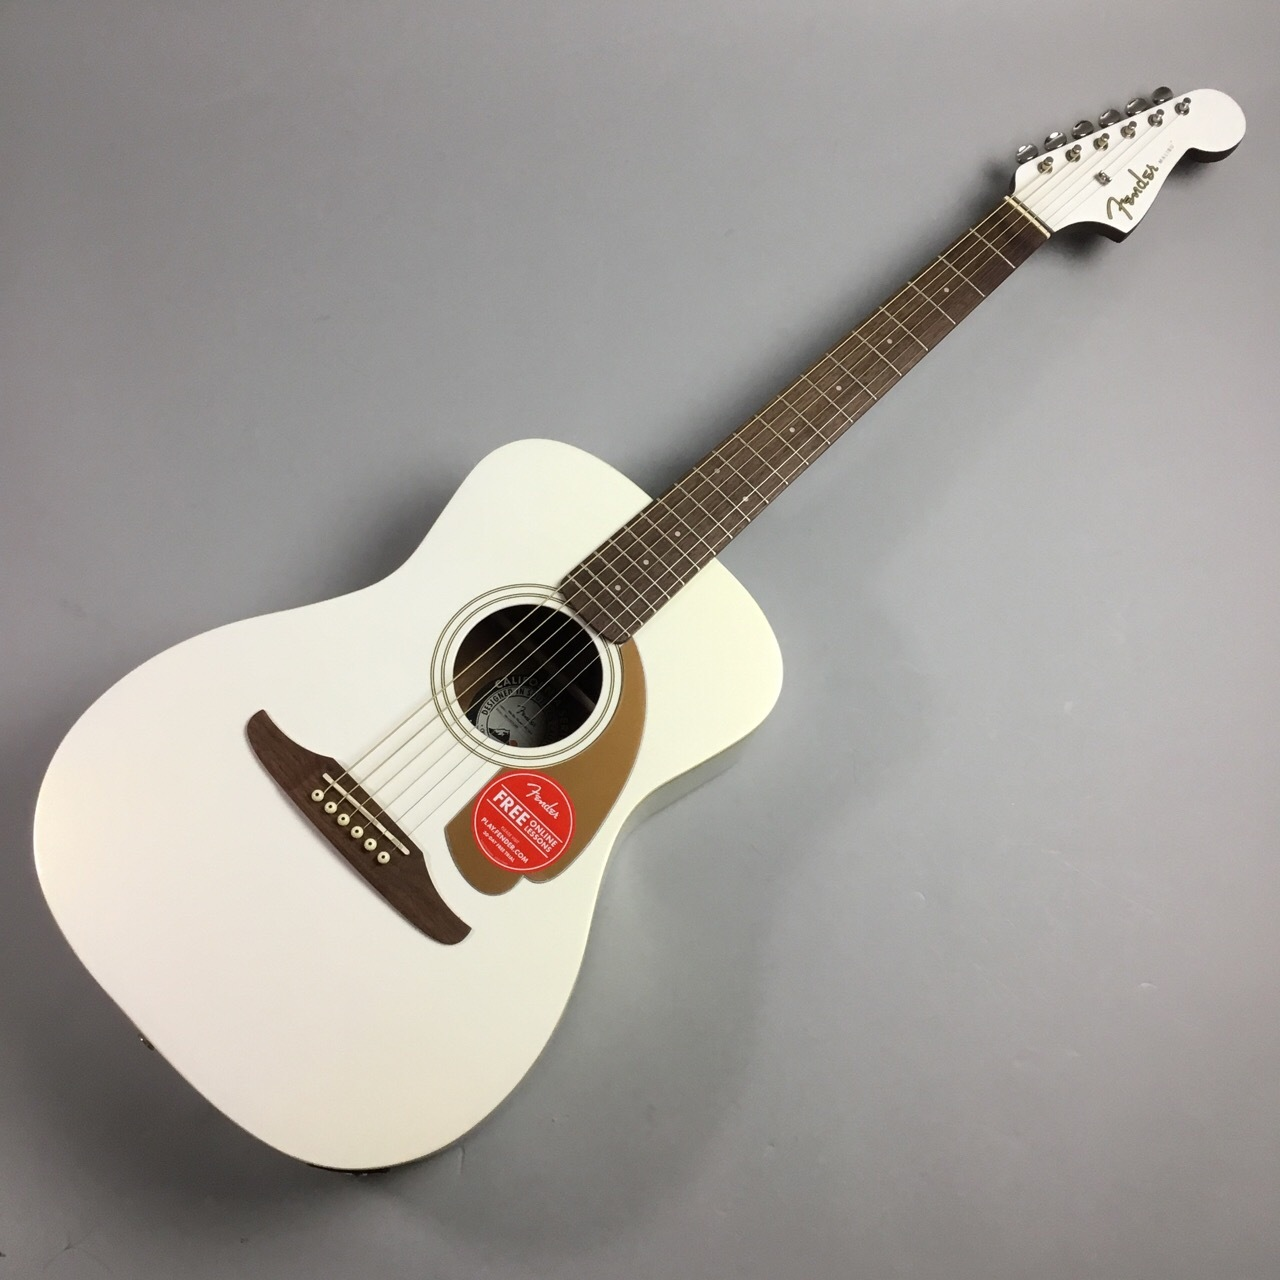 Fender Malibu Player ARG